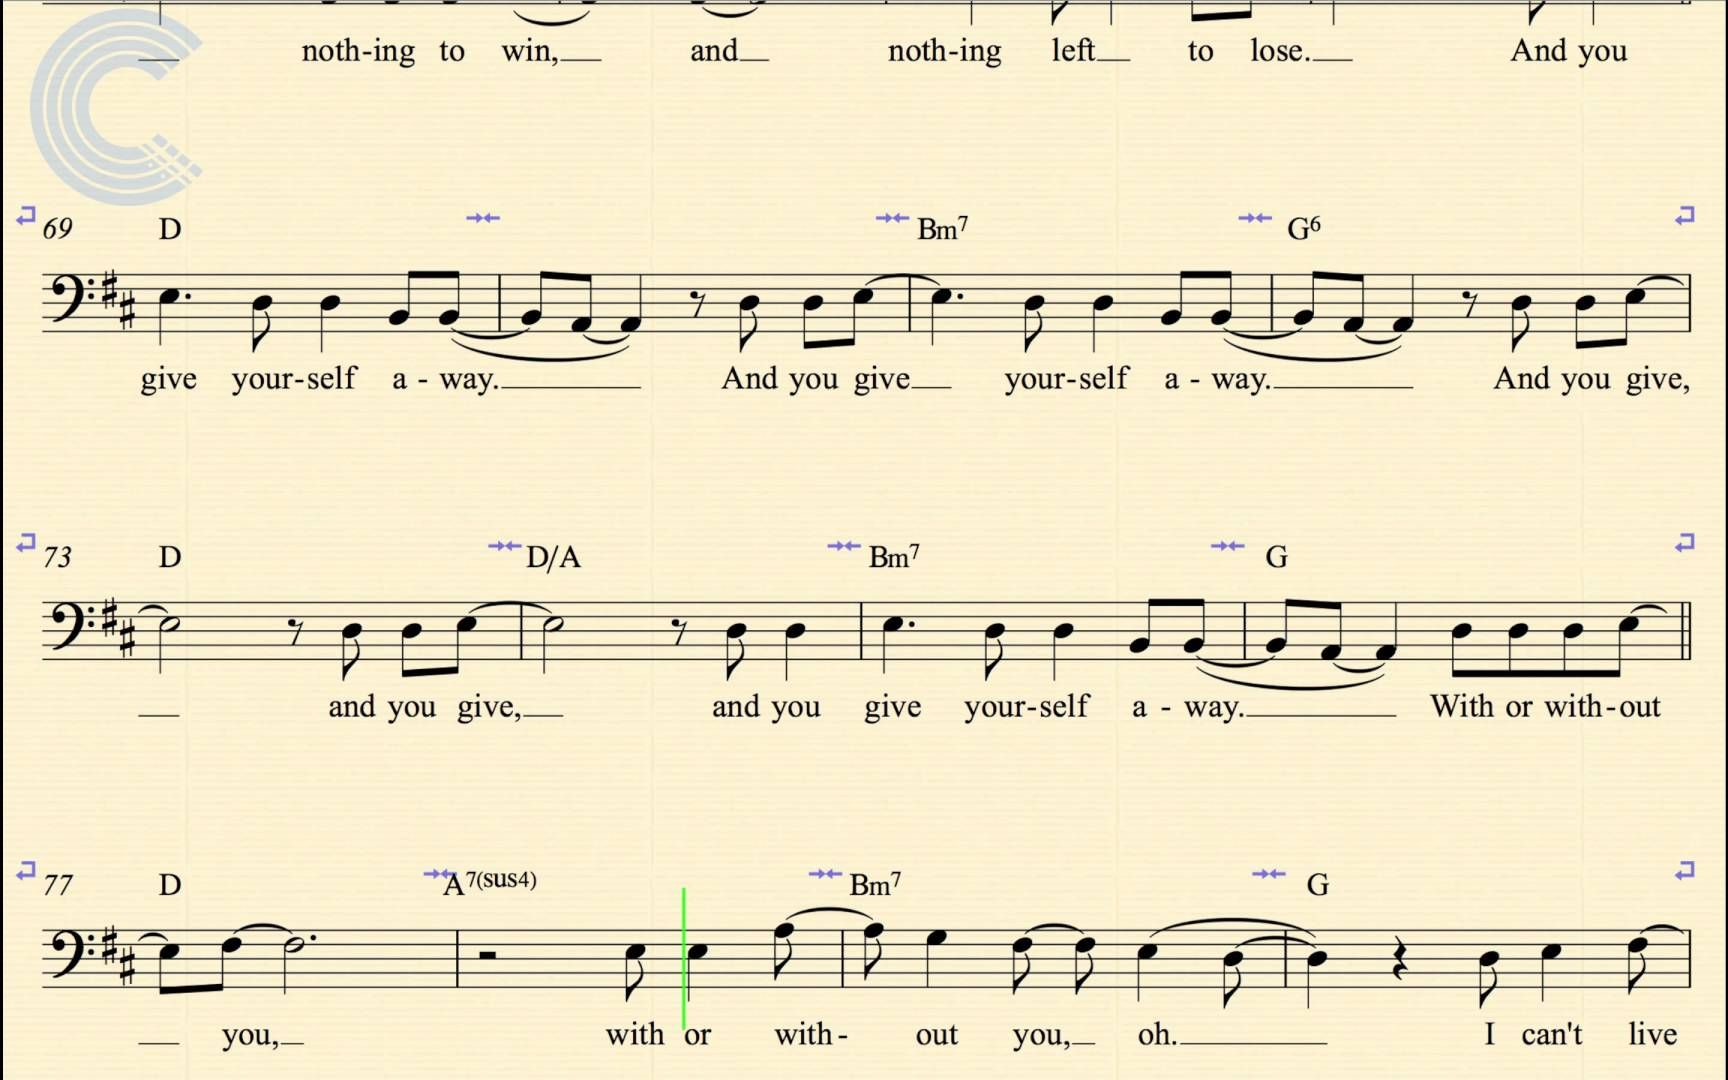 Cello With Or Without You U2 Sheet Music Chords Vocals